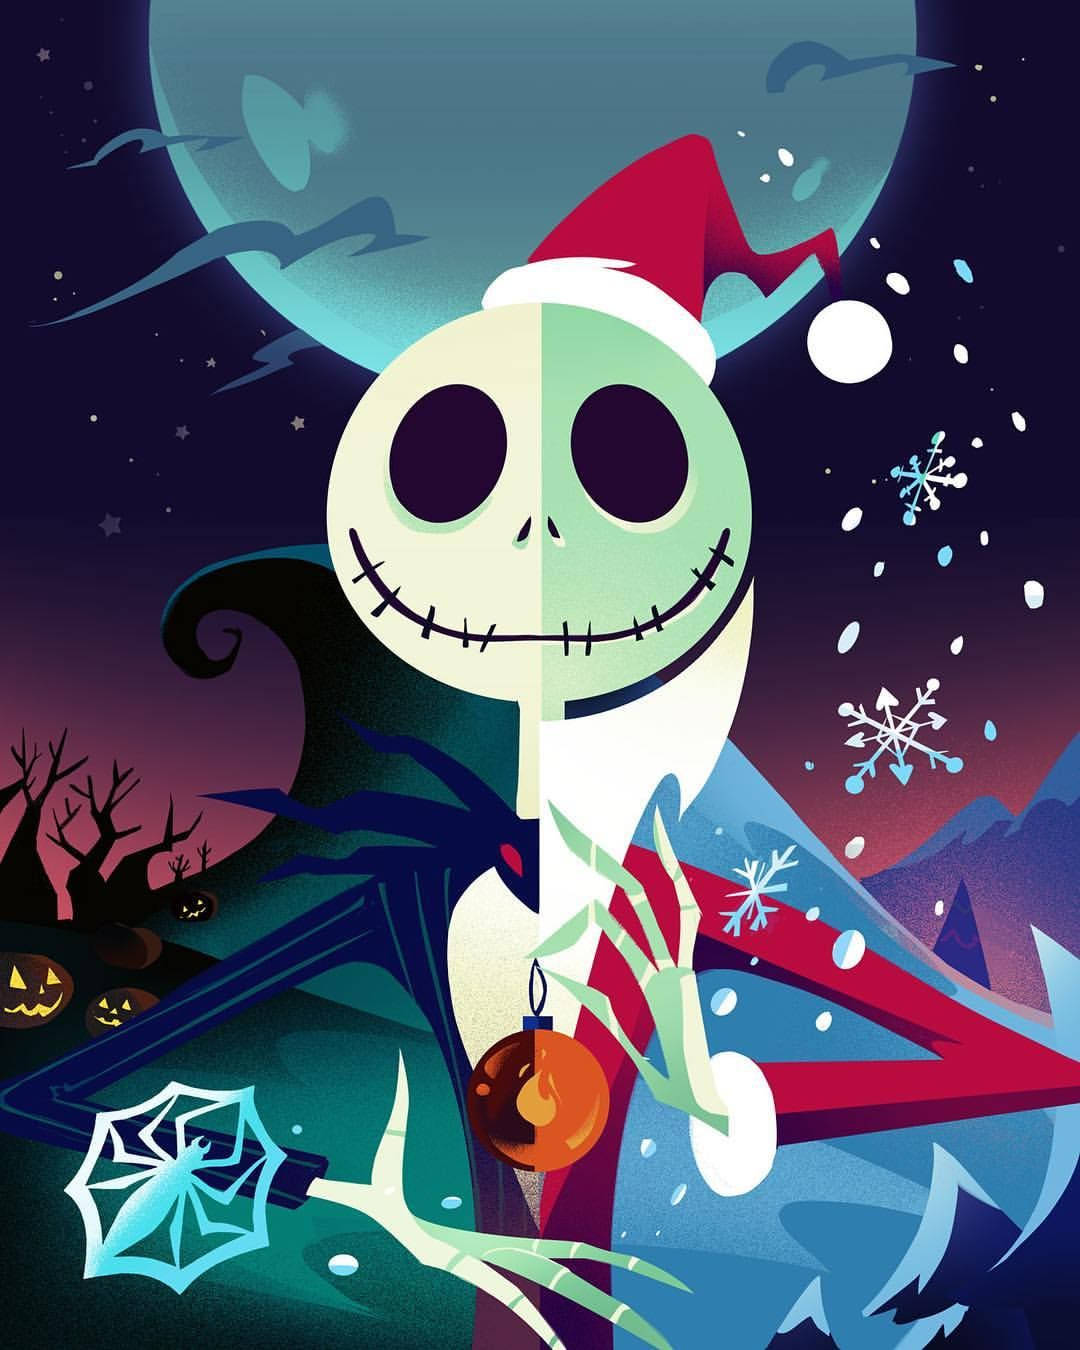 This is Halloween, Nightmare Before Christmas style. Now